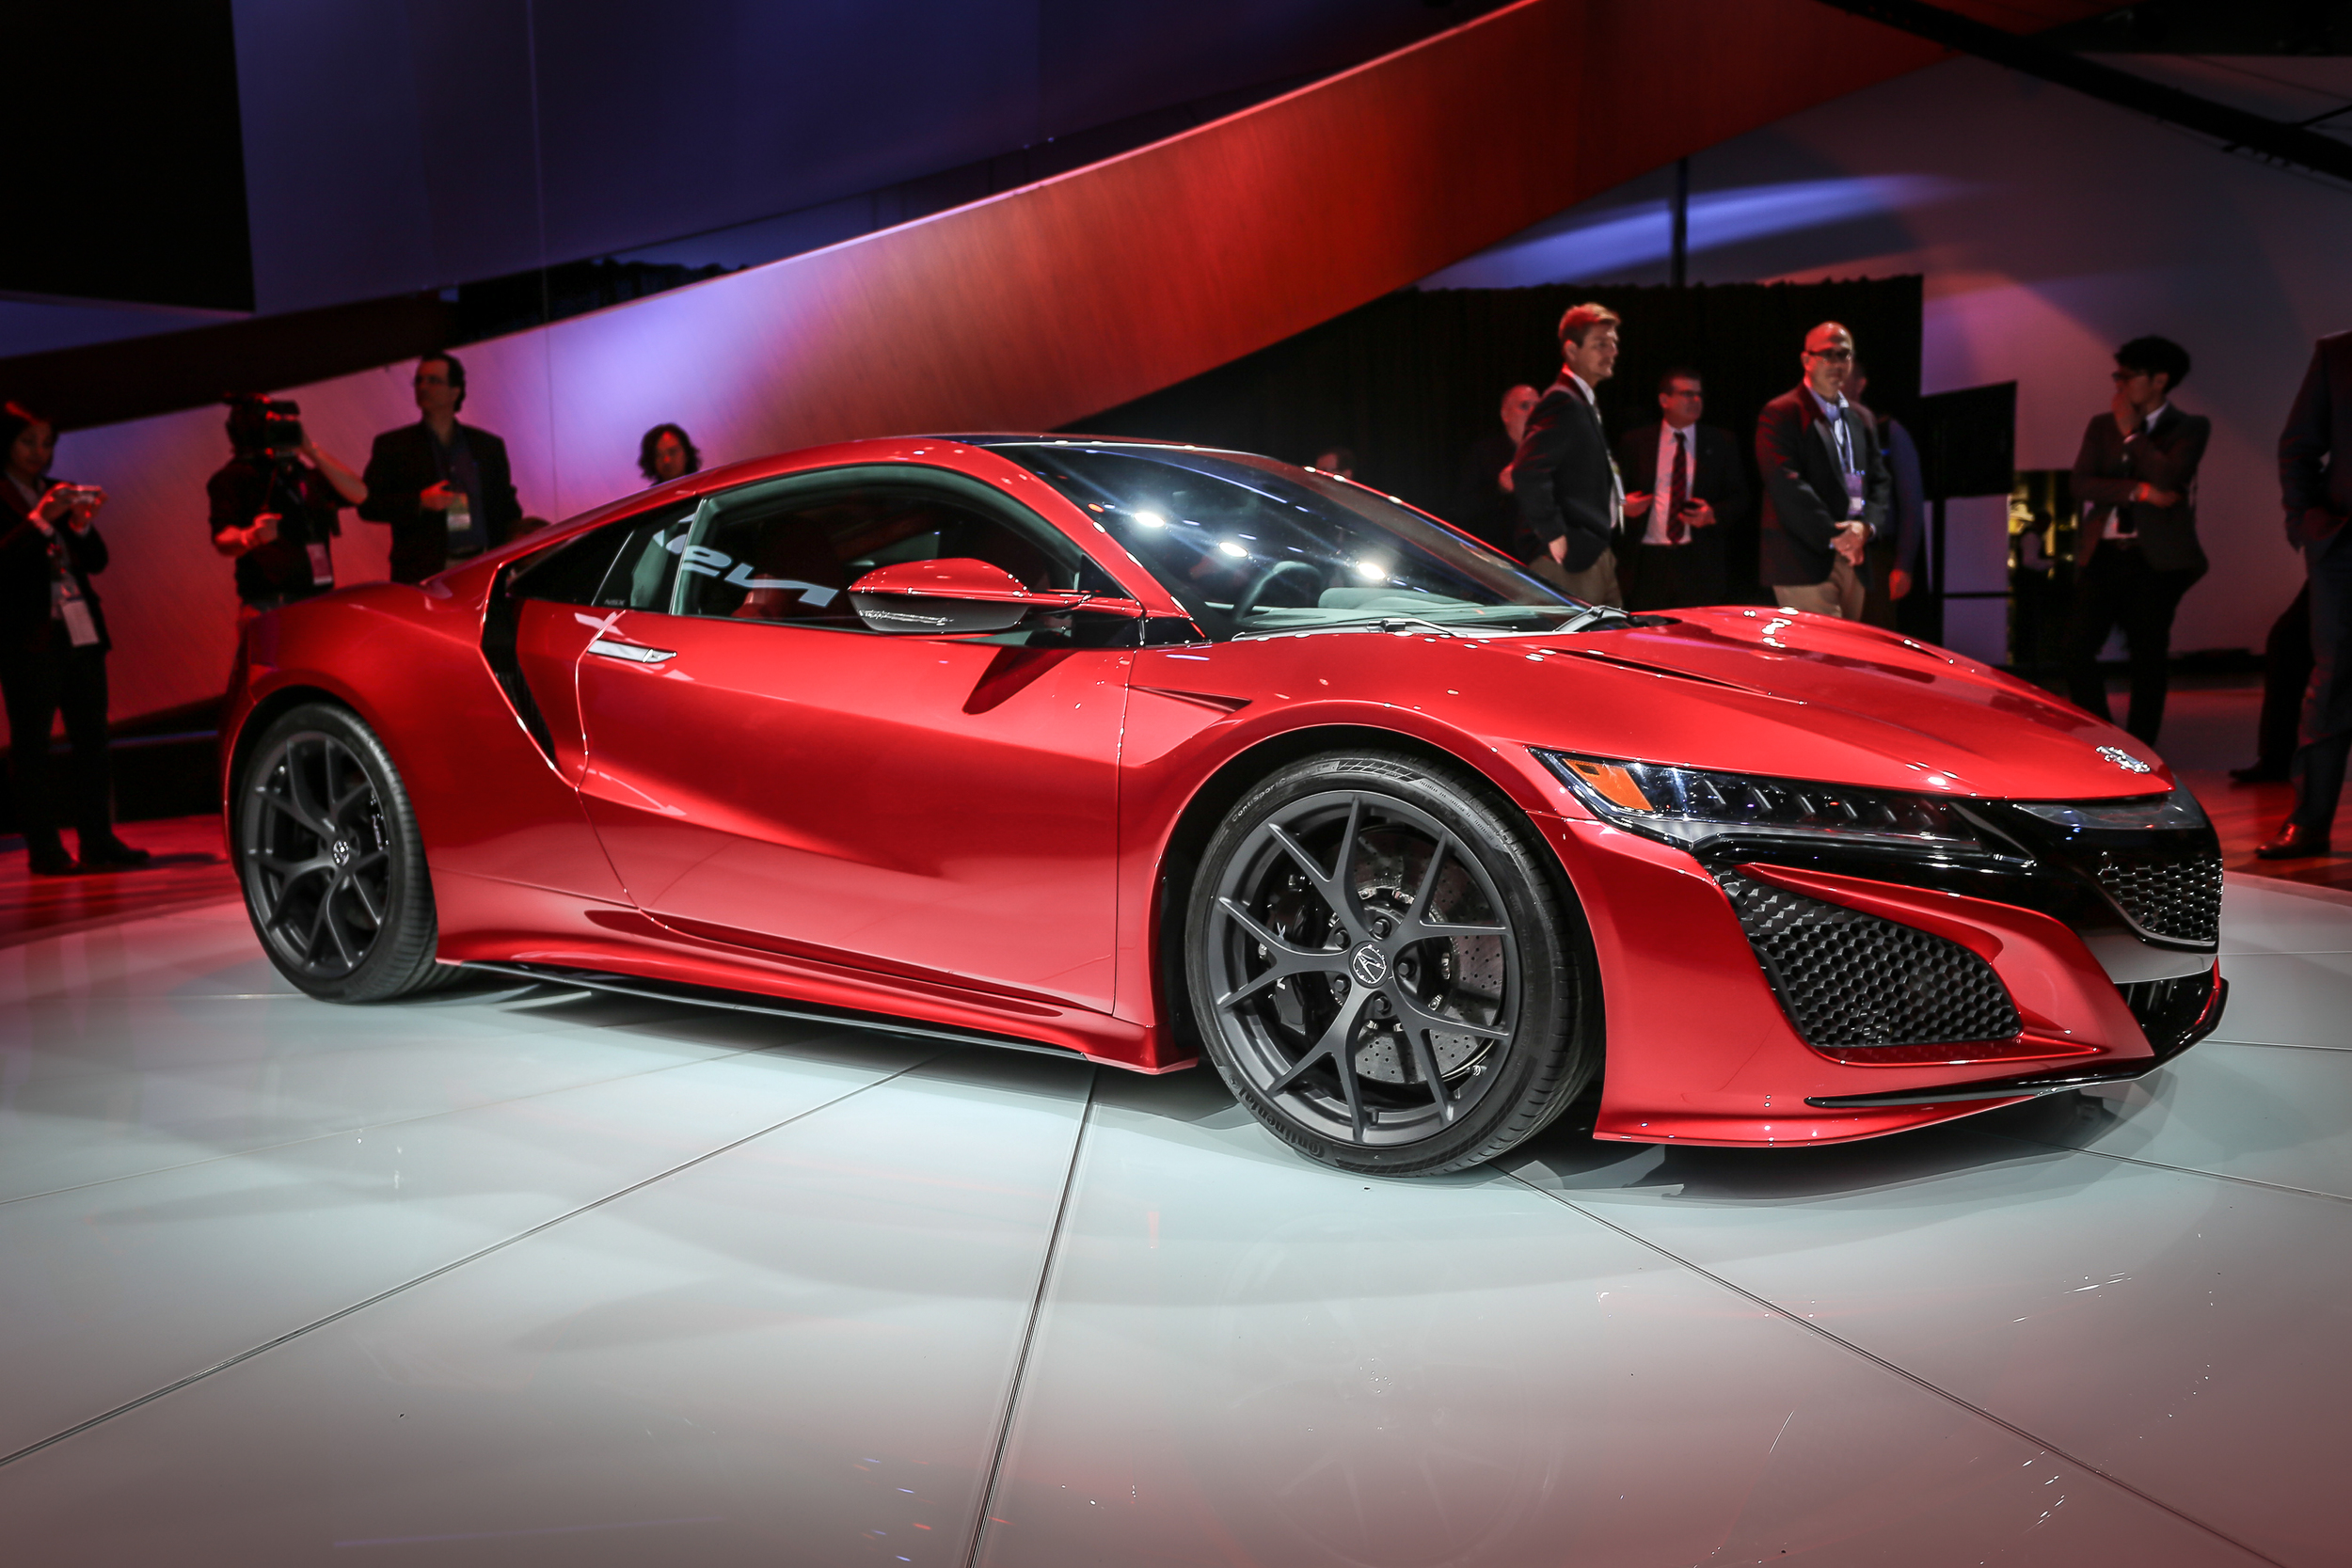 2016 Acura NSX - Click on Image for 2015 NAIAS Day 2 coverage